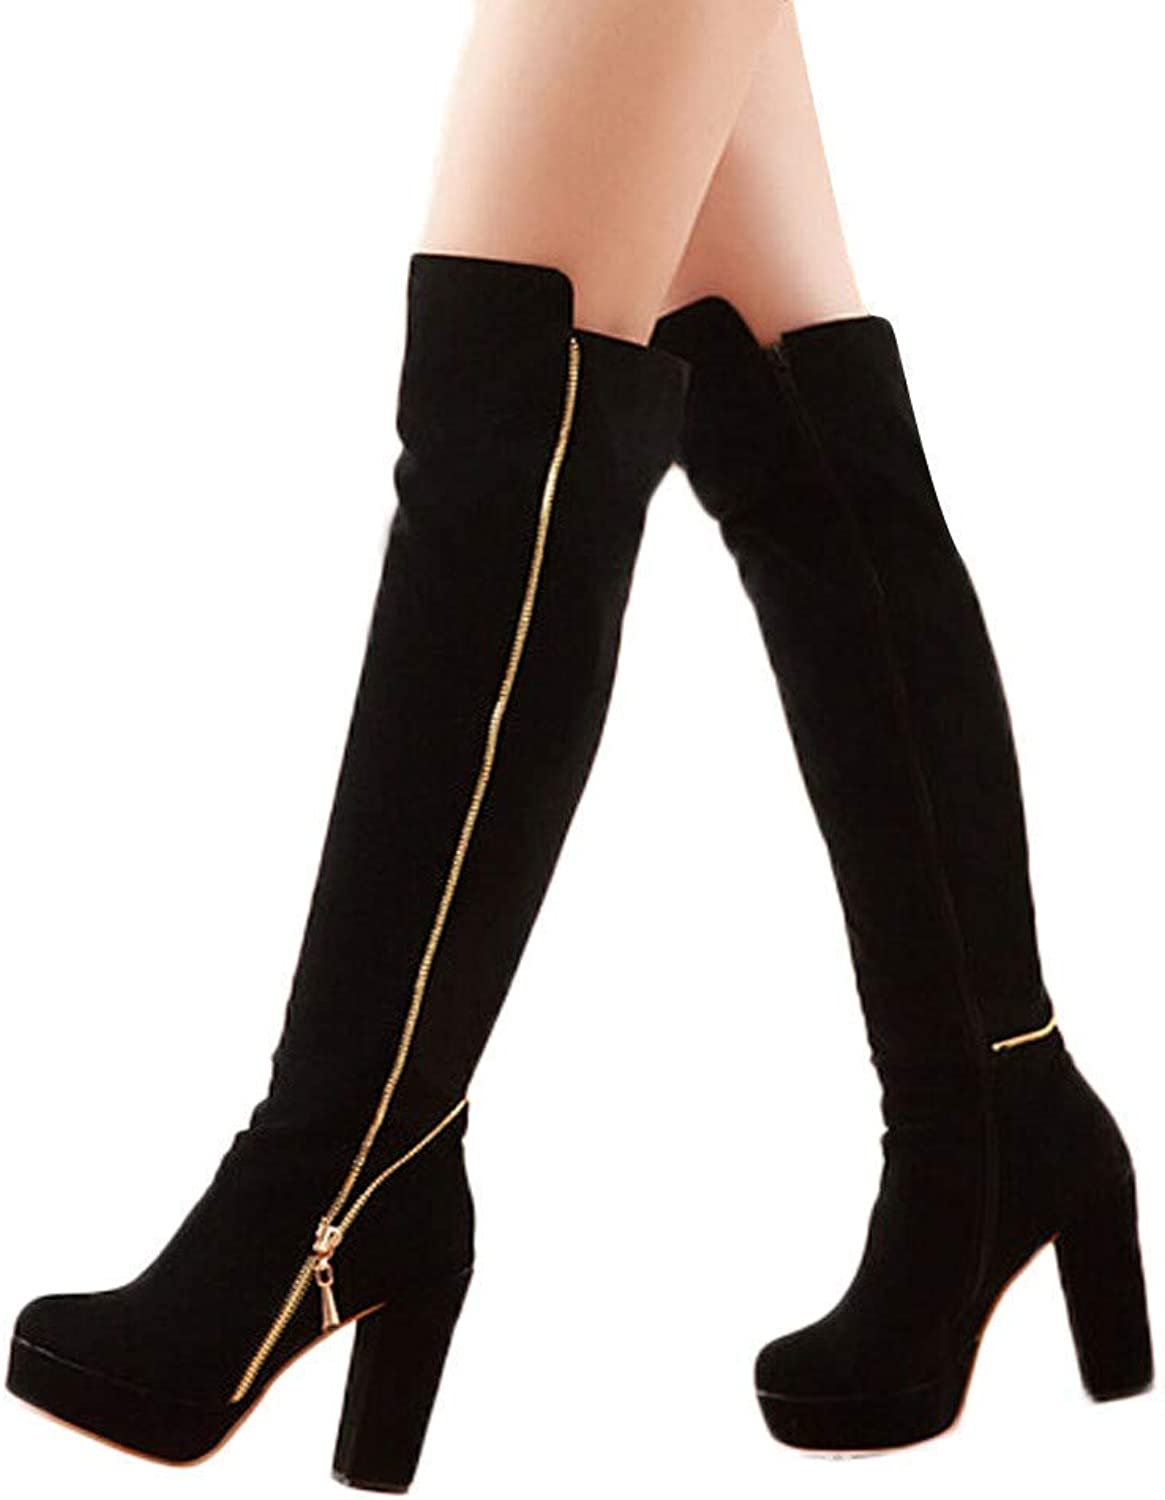 A-LING Women's Tilted Left Right Zip High Anti-Slip Thick Sexy Over-Knee Boots